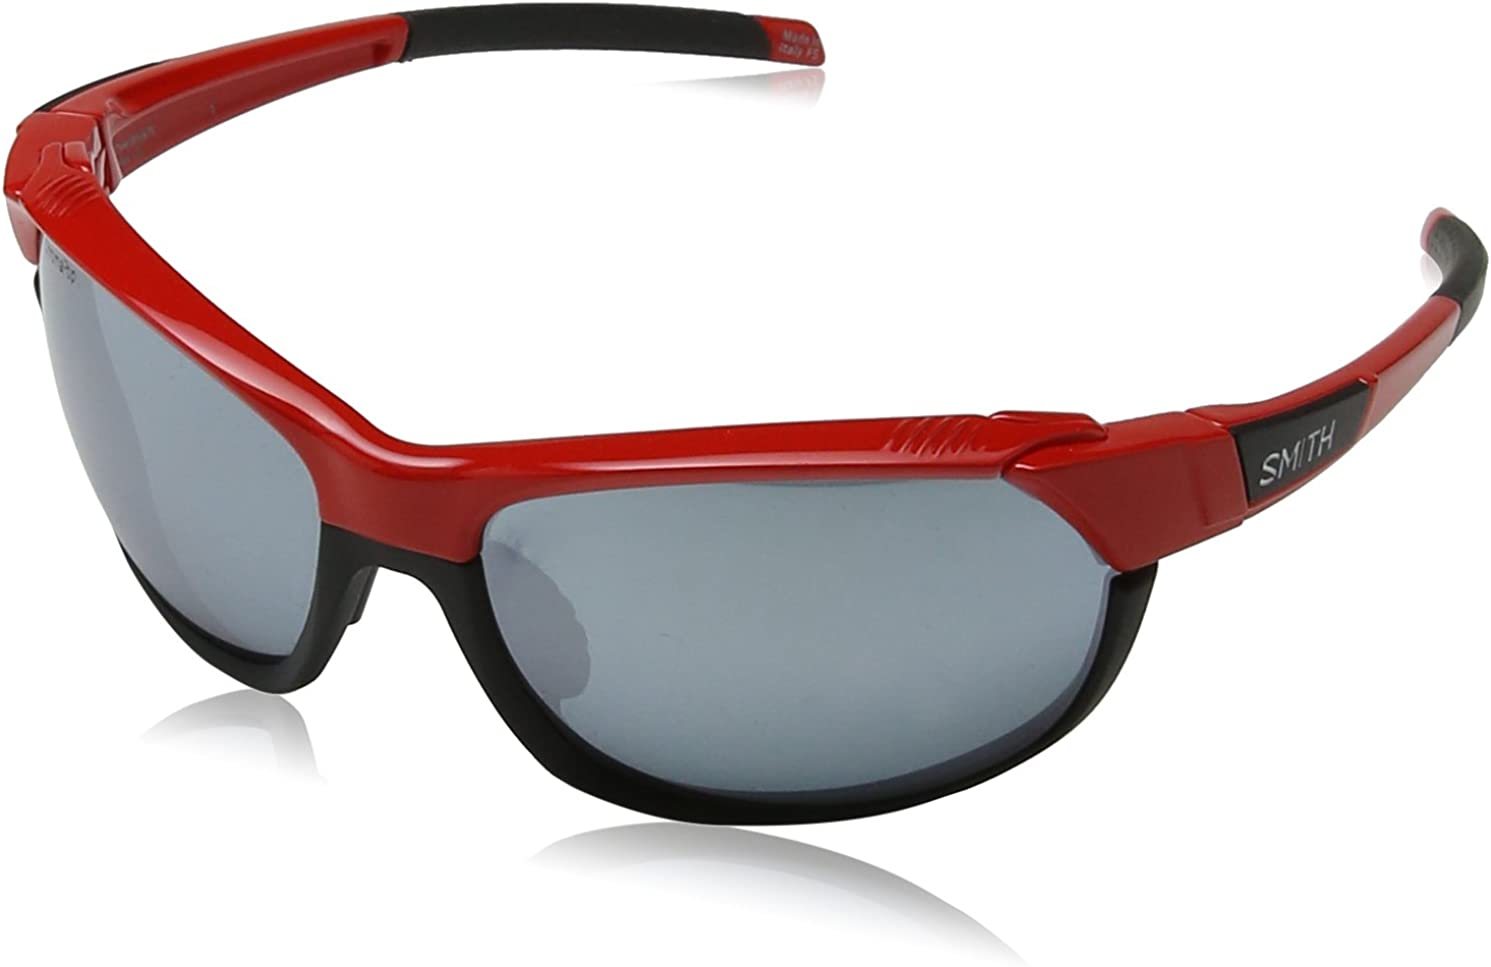 Smith Overdrive/N XB LZJ 61 Gafas de sol, Rojo (Cherry Red/Sl Silver), Unisex Adulto